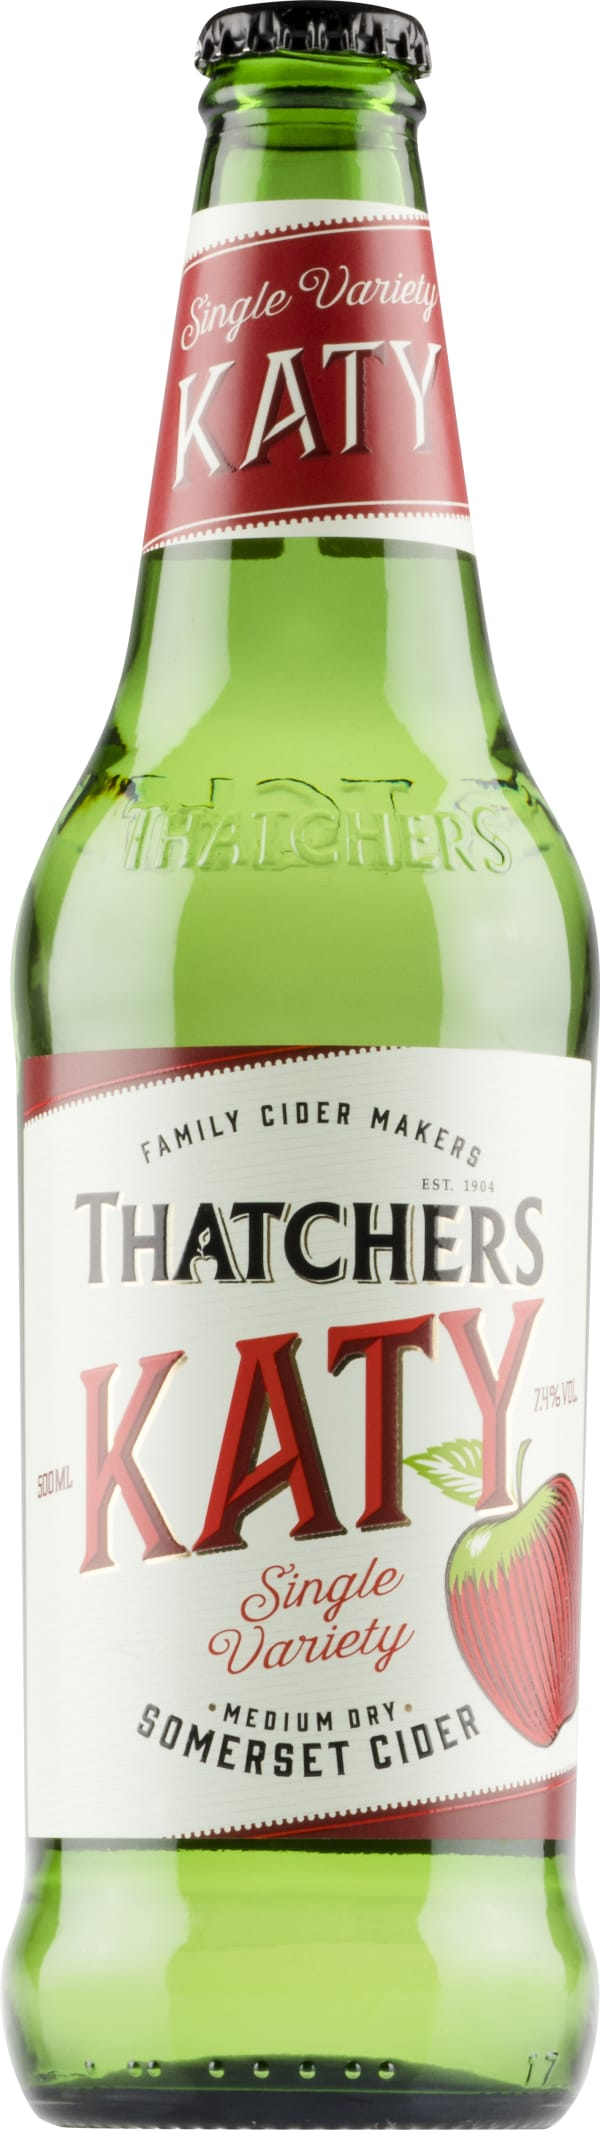 Thatchers Single Variety Katy